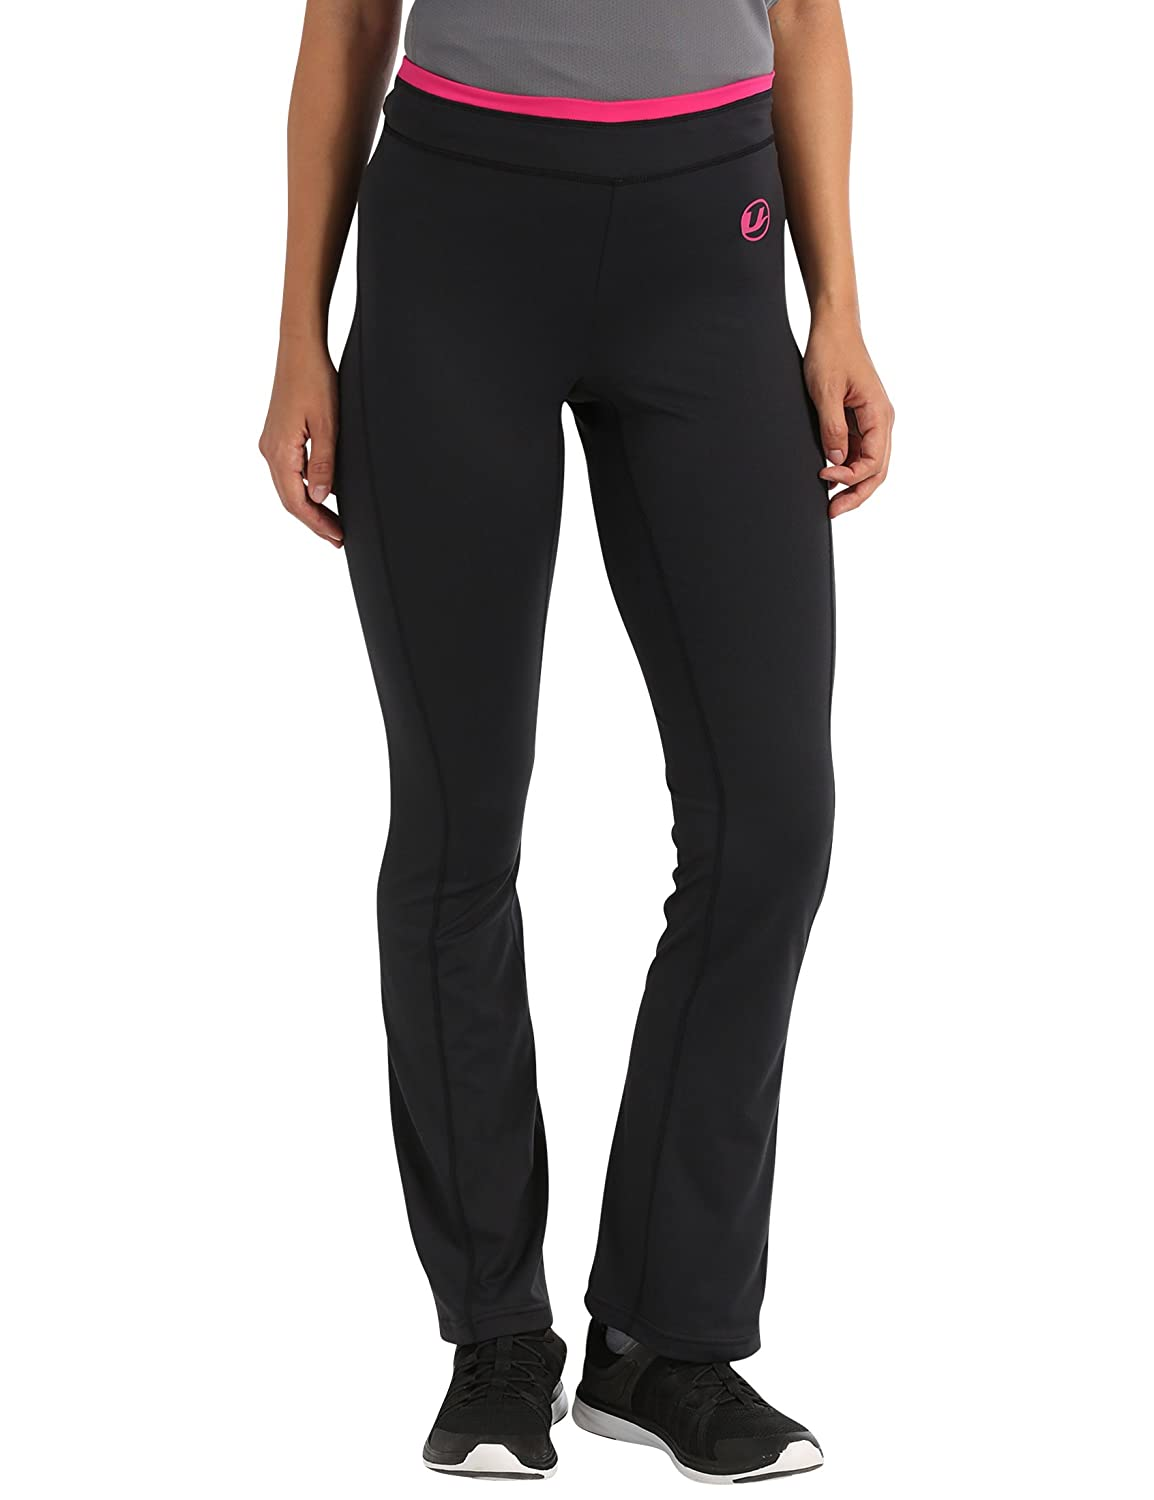 Ultrasport fitness trousers antibacterial and long, ladies jogging pants with quick dry function, several colour combinations available, stretchy and wear-resistant, fashionable sports trousers for women 1009